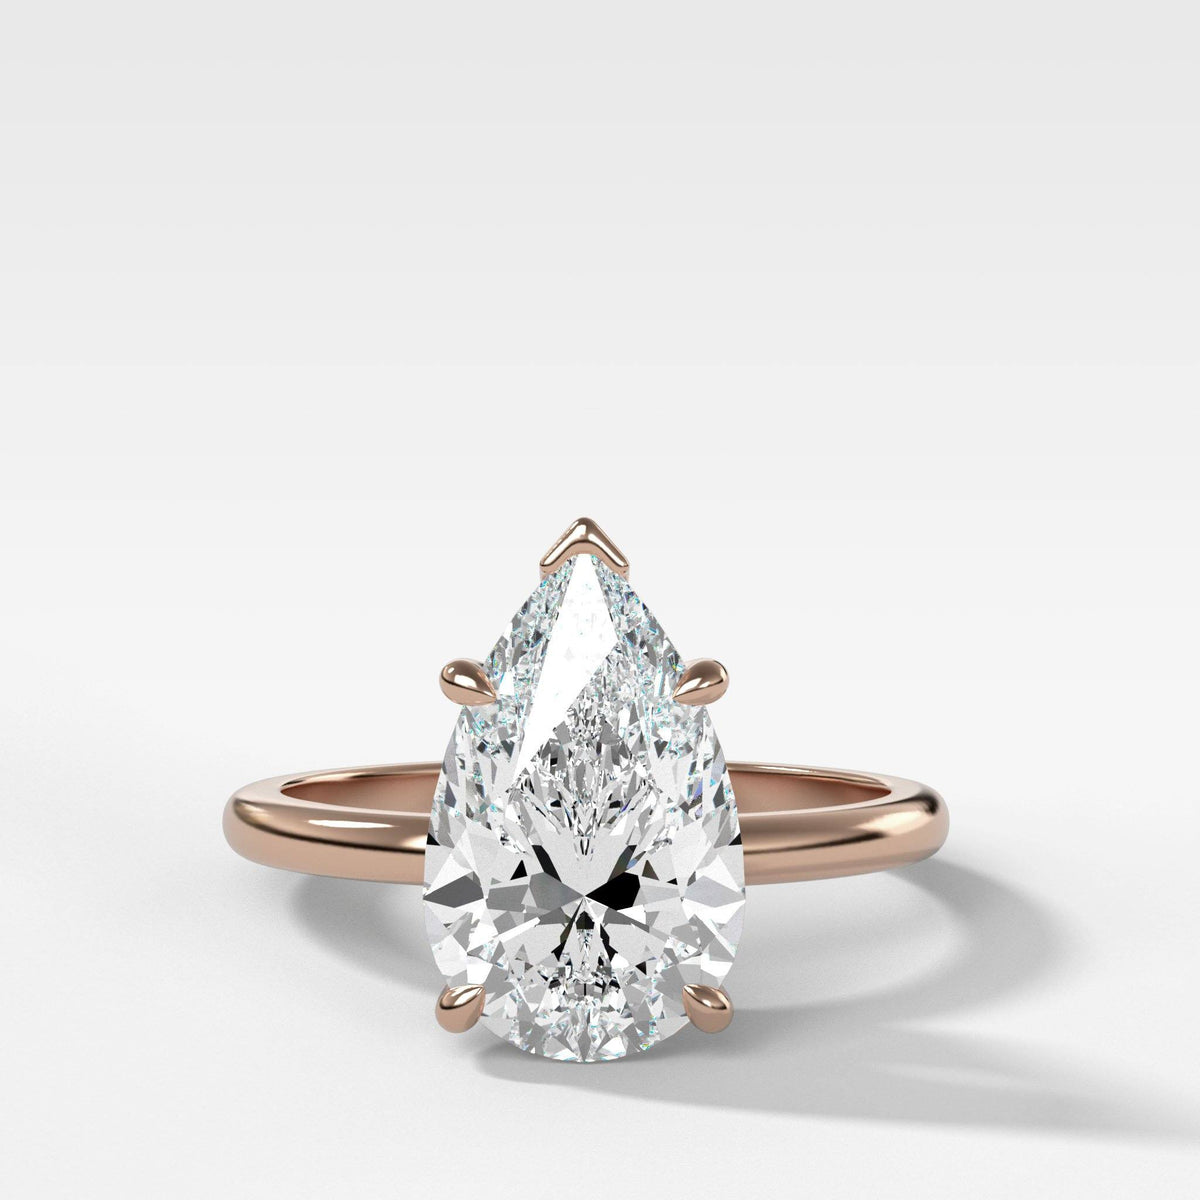 Crescent Solitaire With Pear Cut in Rose Gold by Good Stone